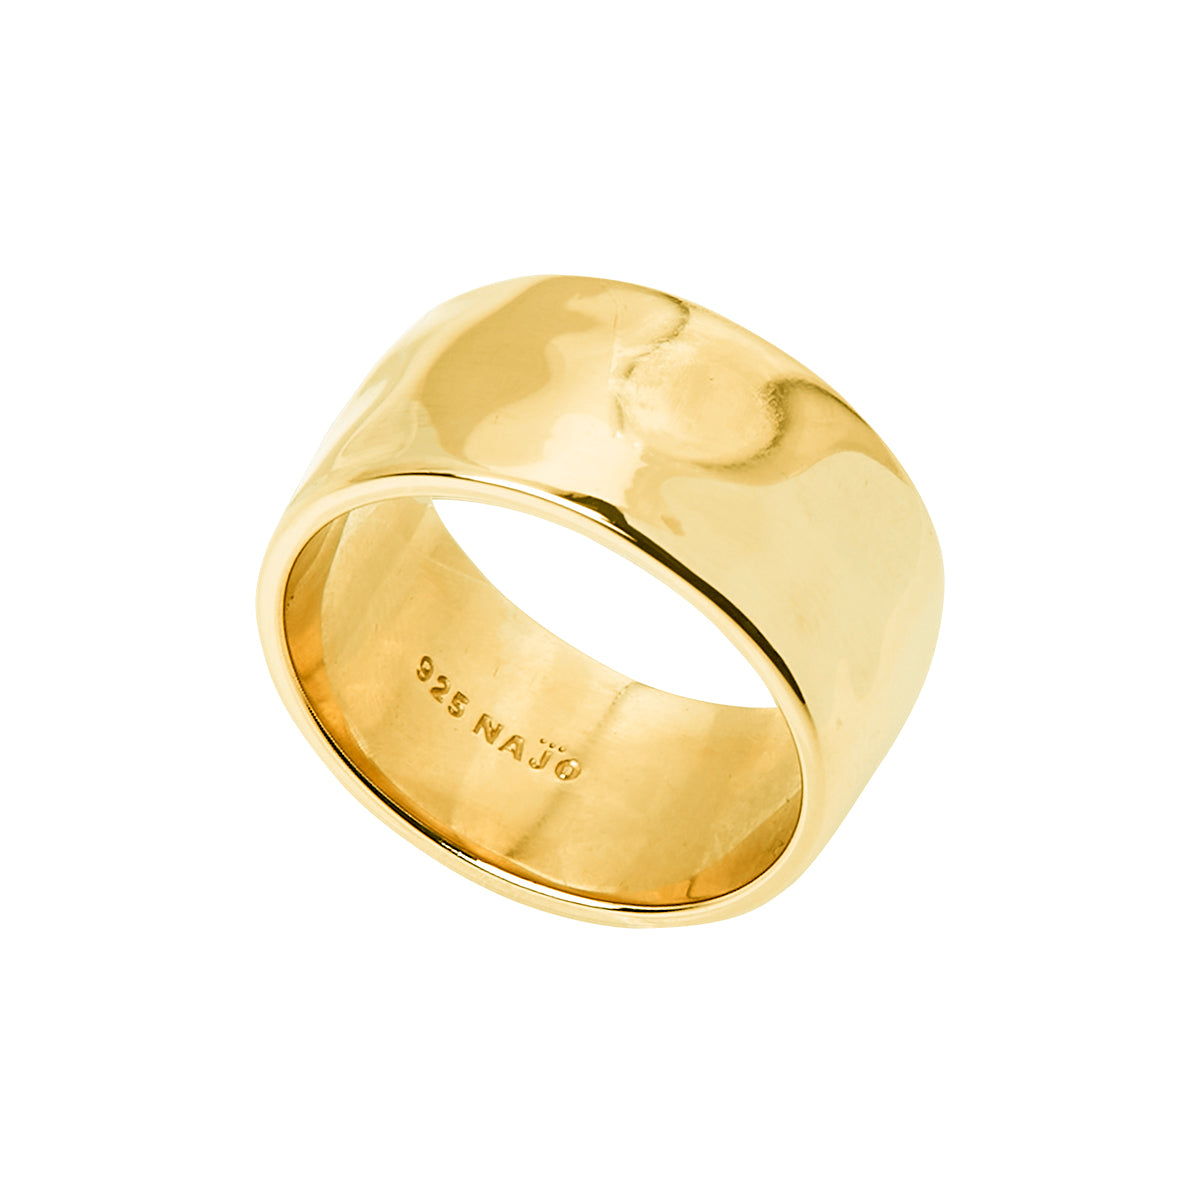 Barber Gold Ring